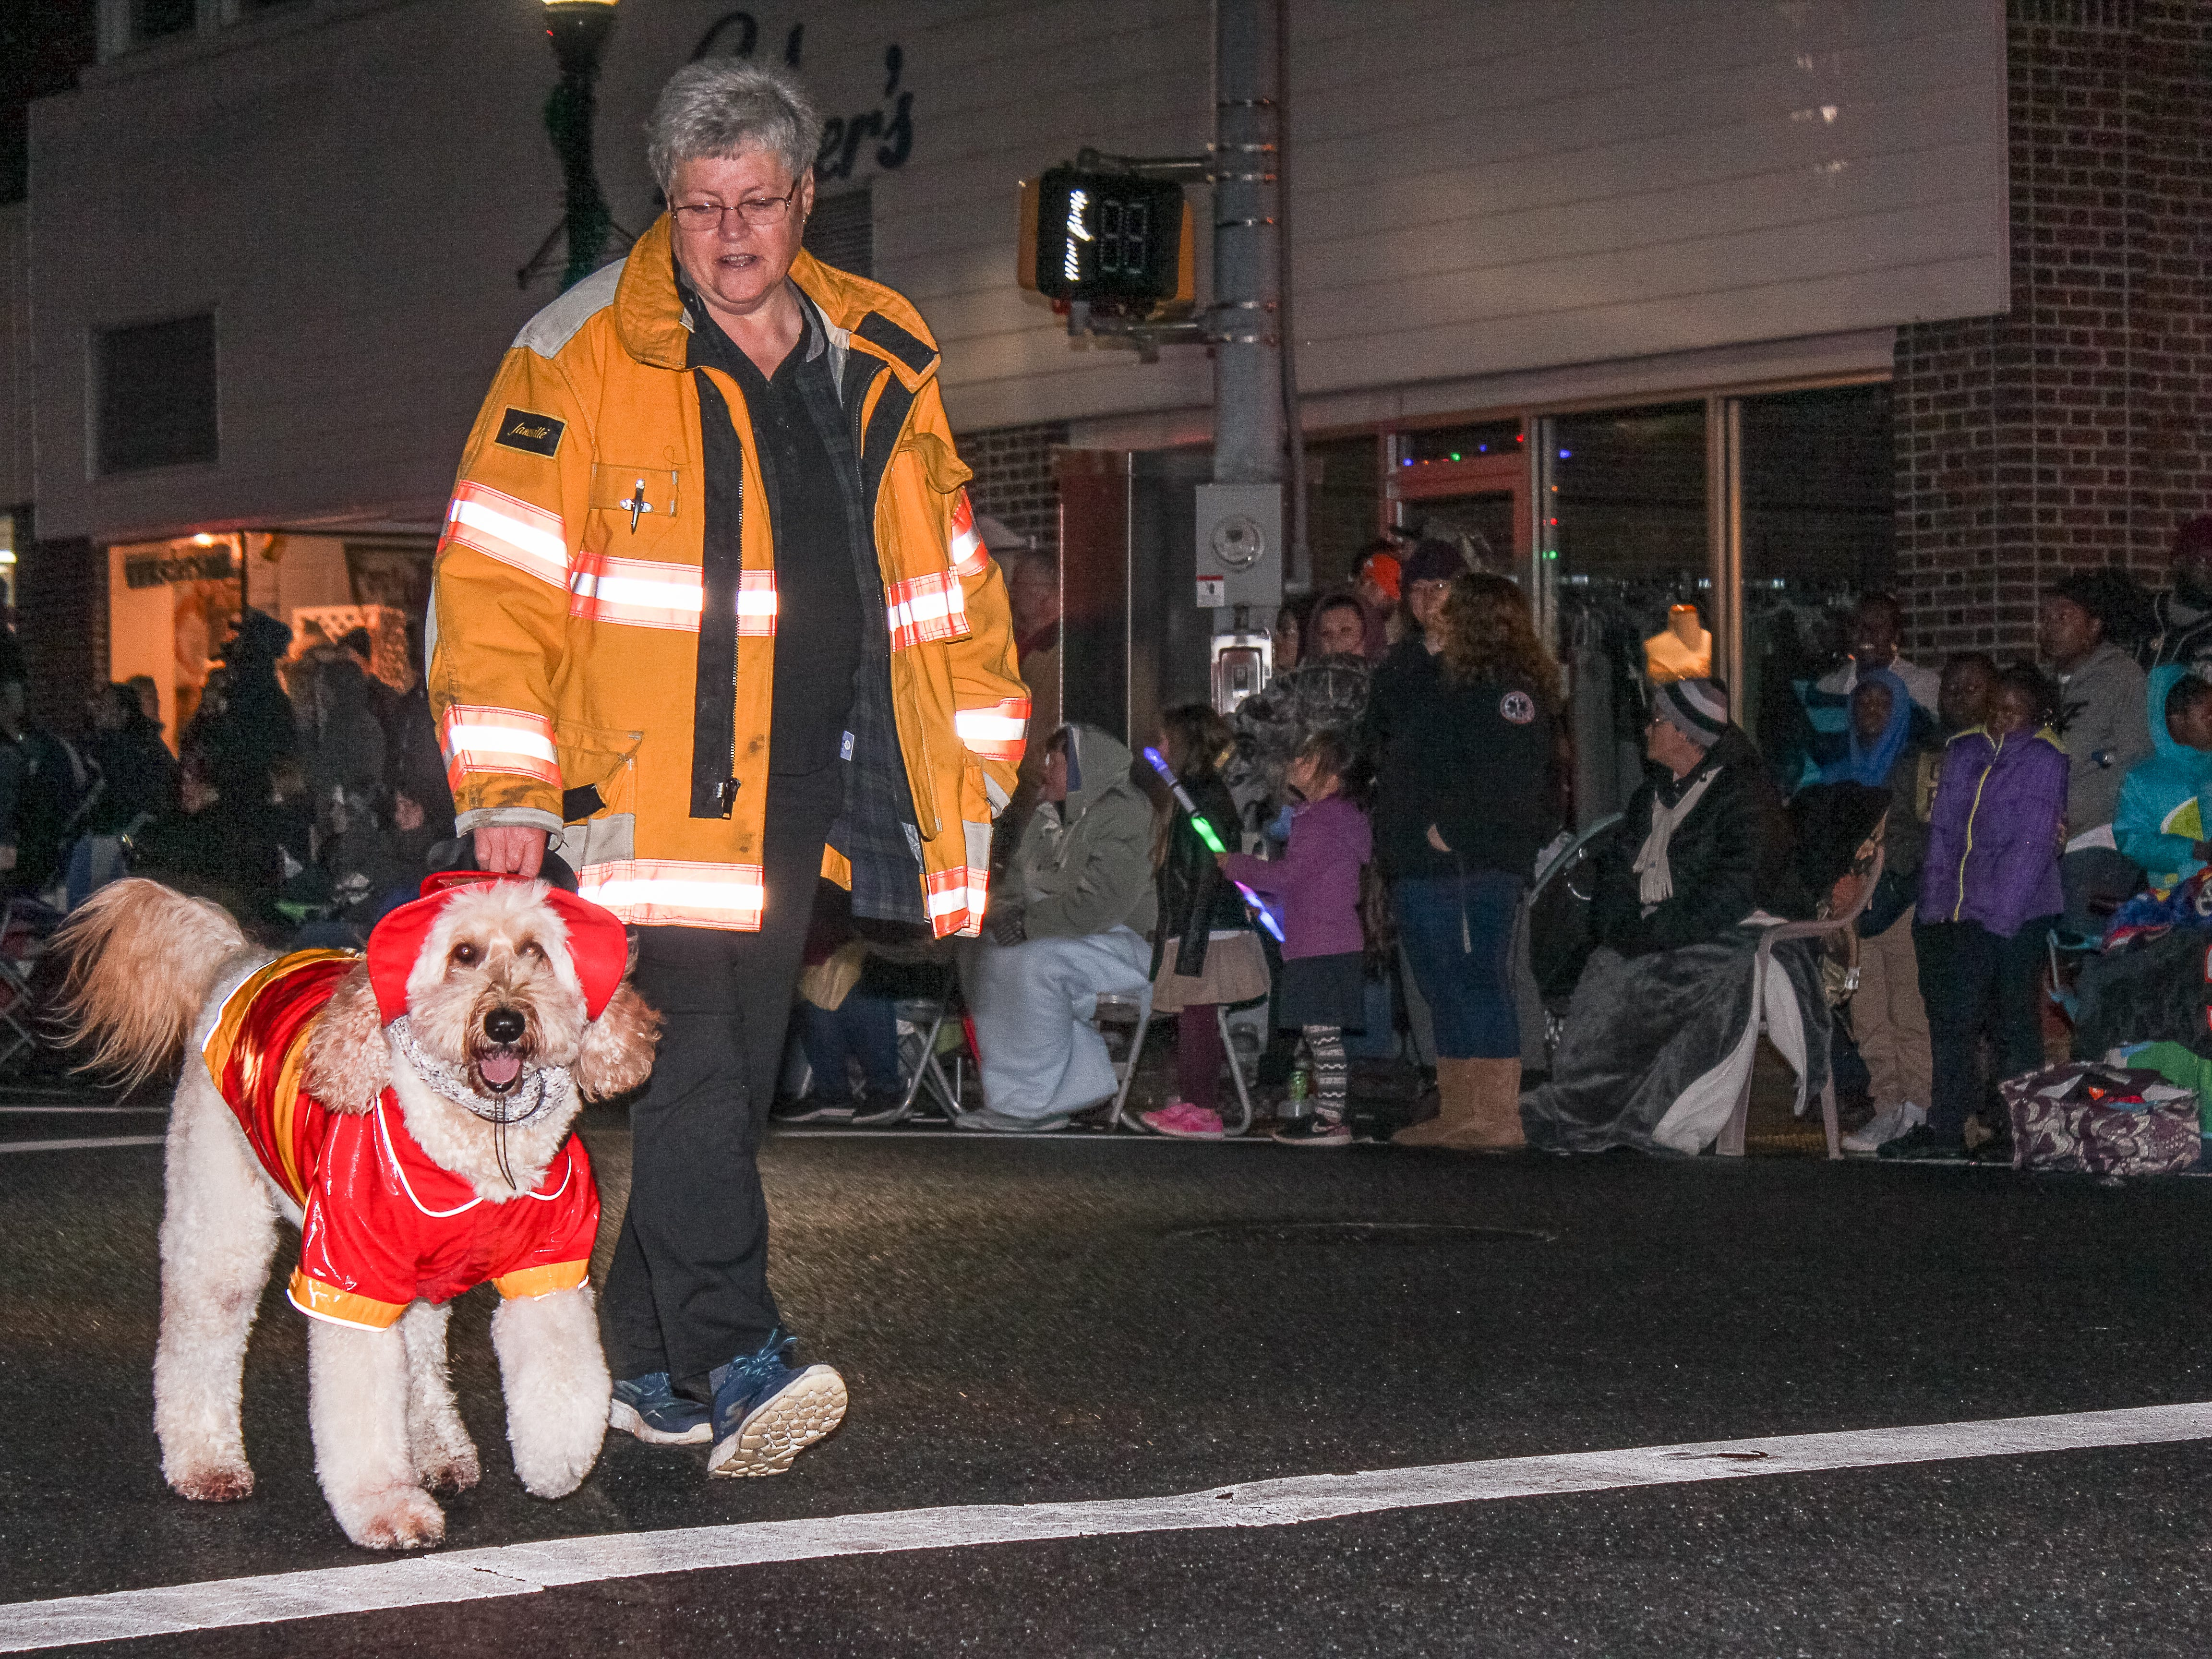 Several hundred people turned out to see the Pocomoke Christmas Parade on Monday, Nov. 26.